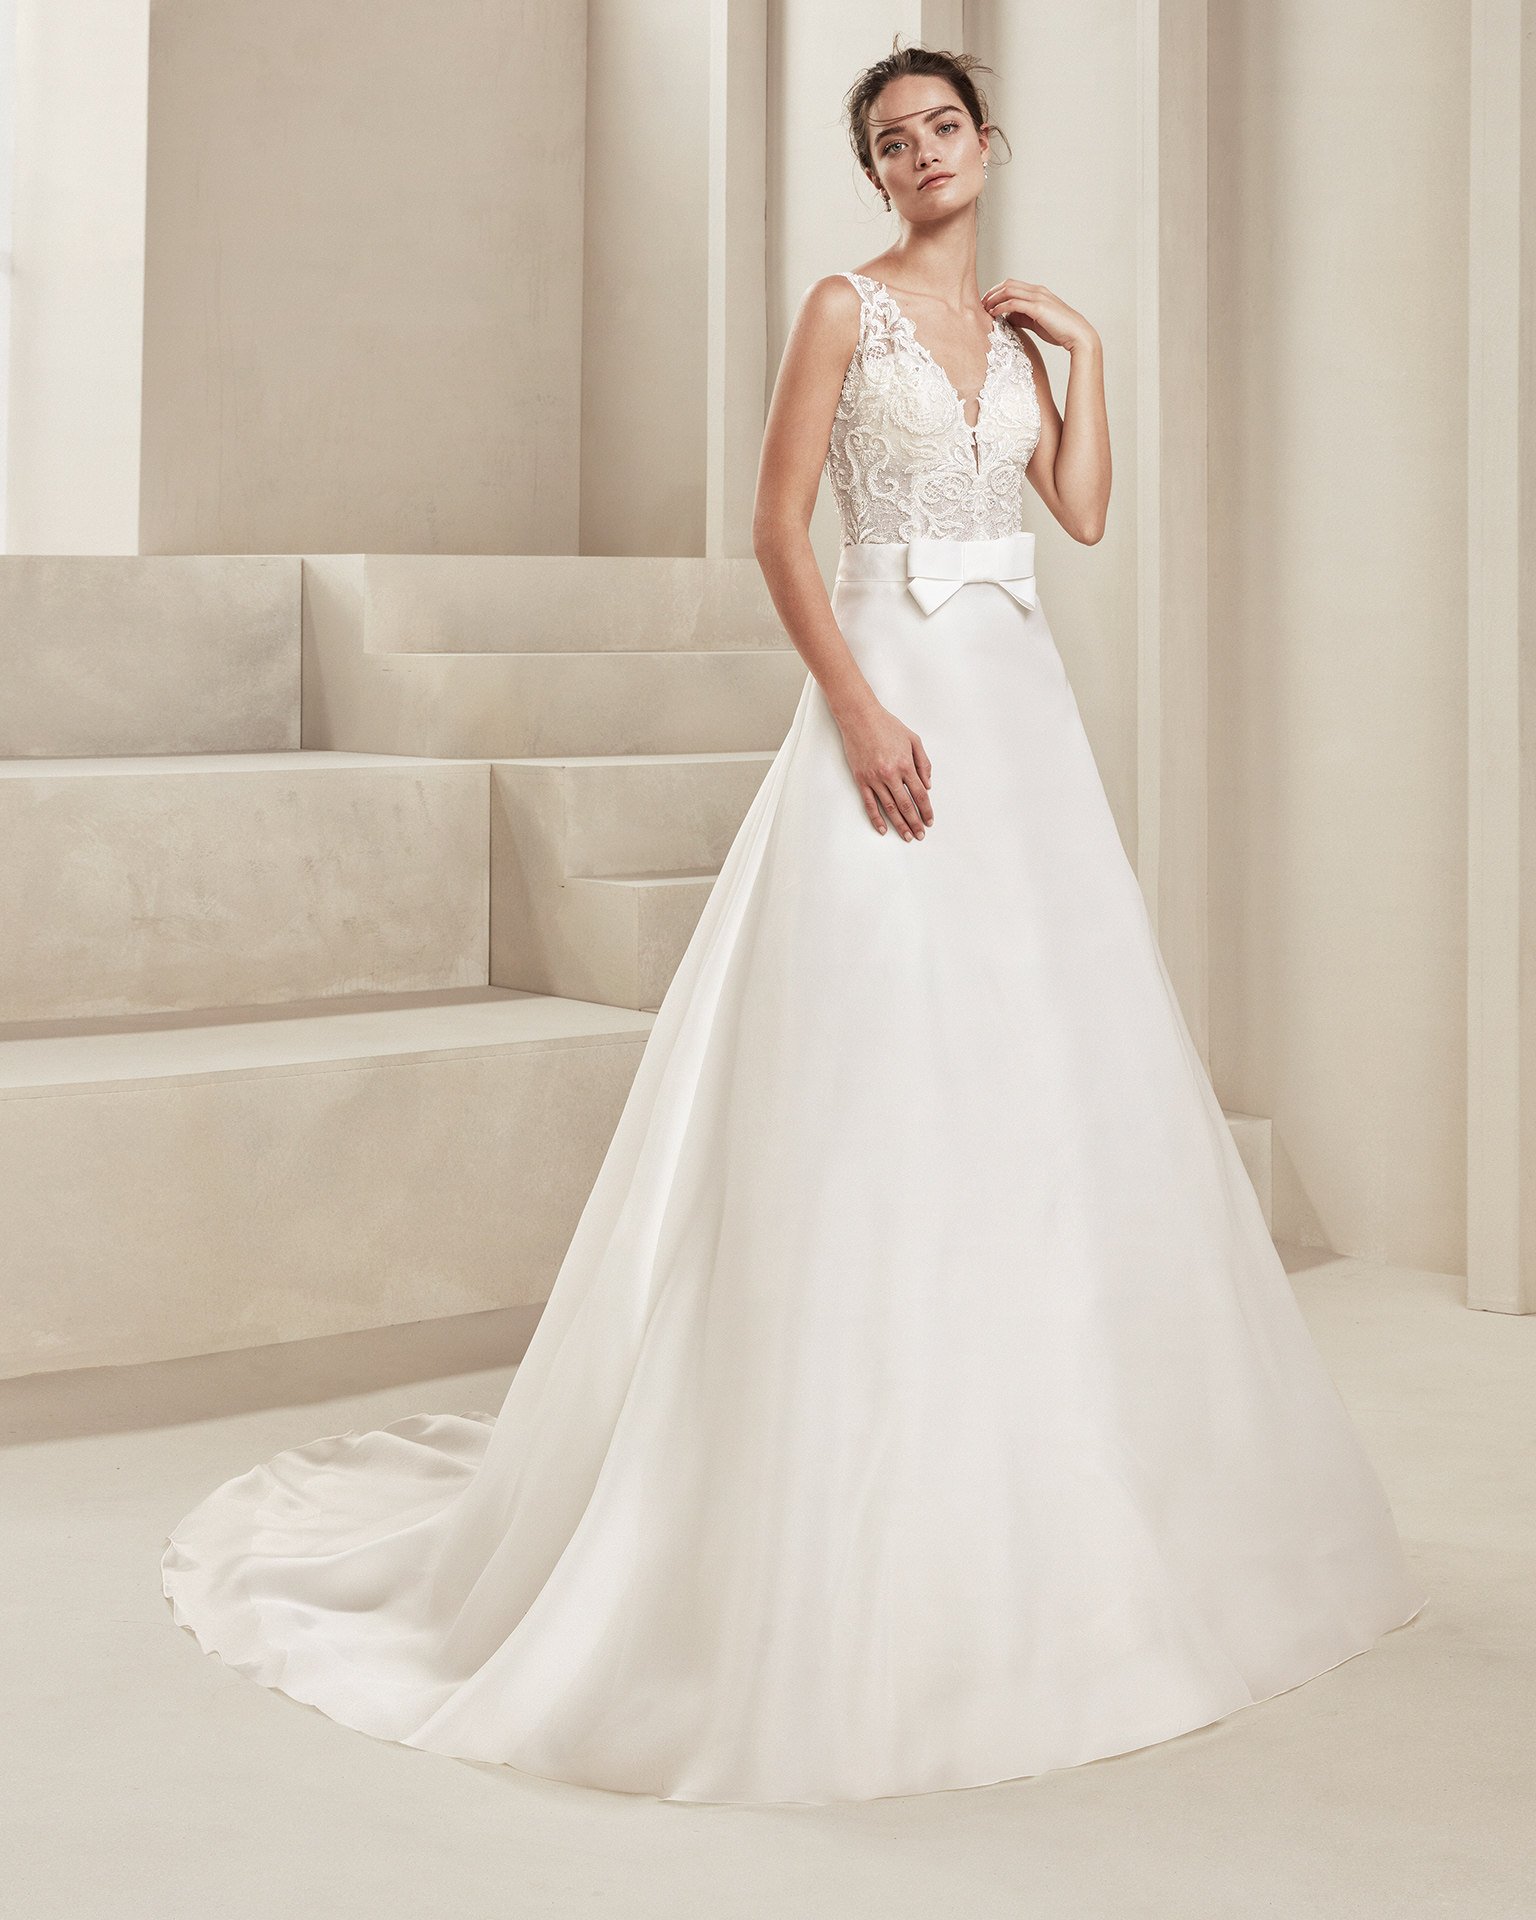 Classic wedding dress in organza and beaded lace. With deep-plunge neckline and teardrop back. With bow at the waist. Available in natural. 2019 ALMA_NOVIA Collection.